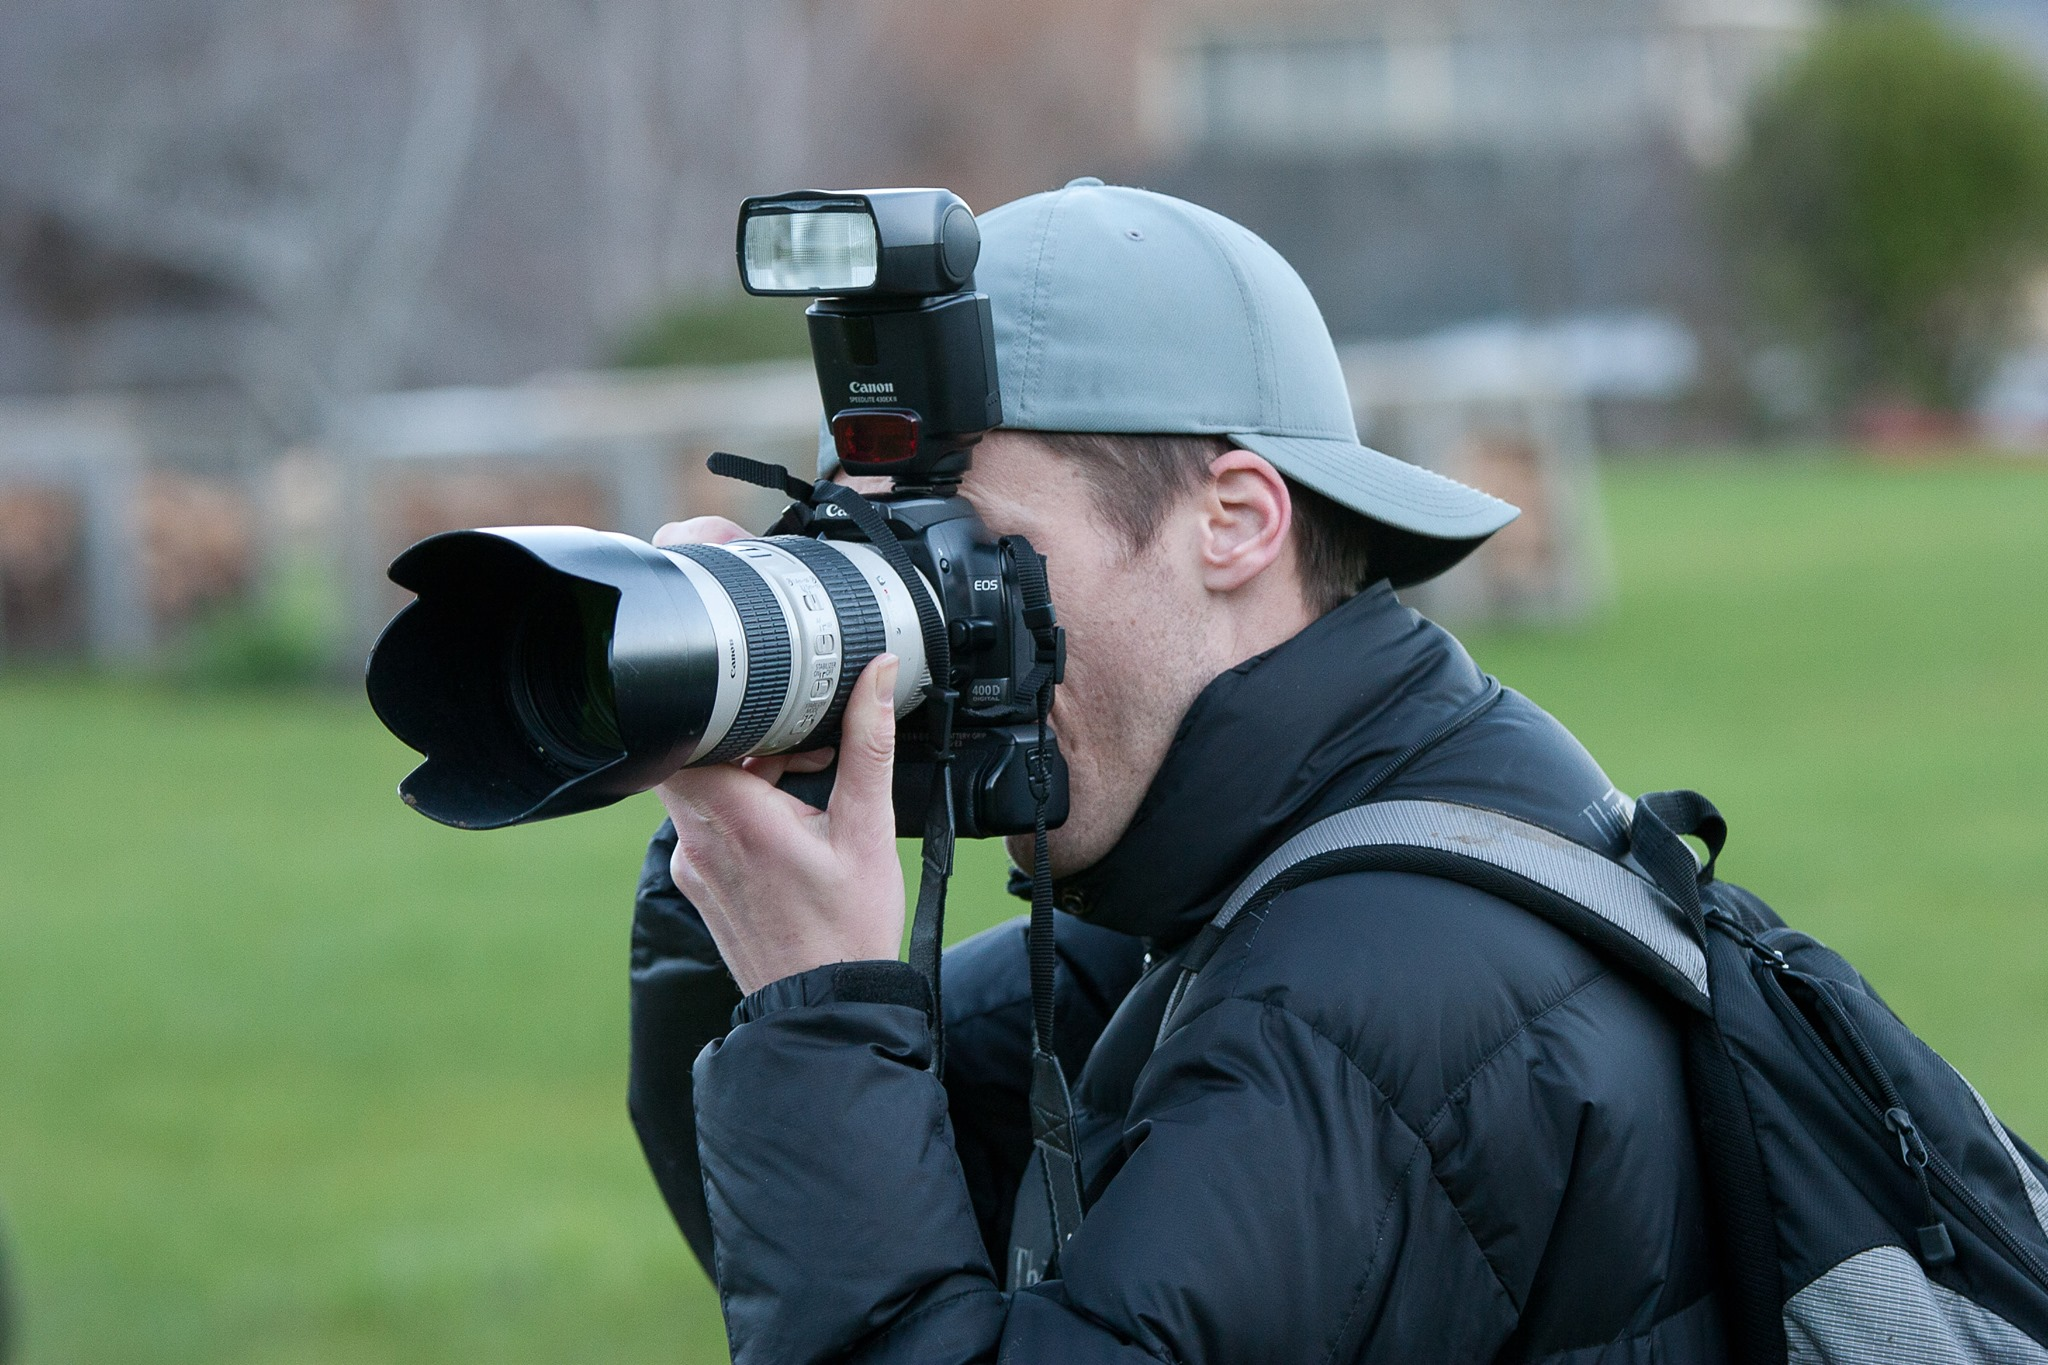 Me working as a photographer at a local cycling race. A photograpjh of a photographer ;)